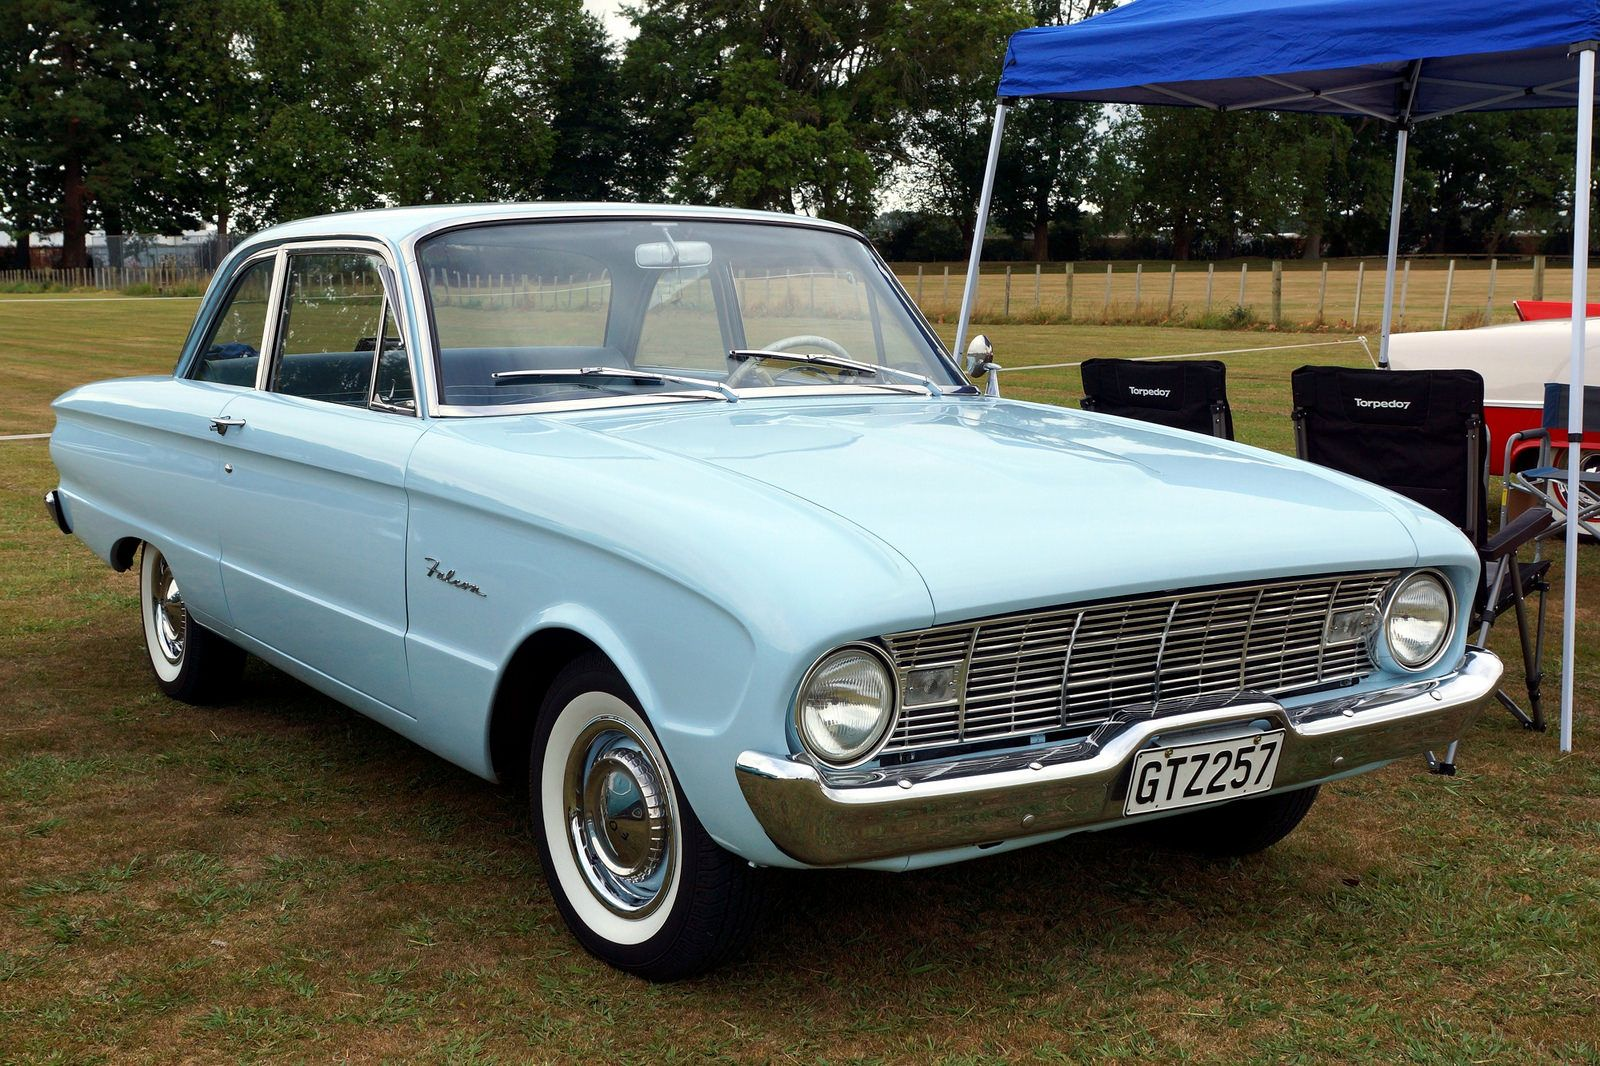 1960 Ford Falcon Two Door Ford Falcon Classic Cars Usa Ford Classic Cars